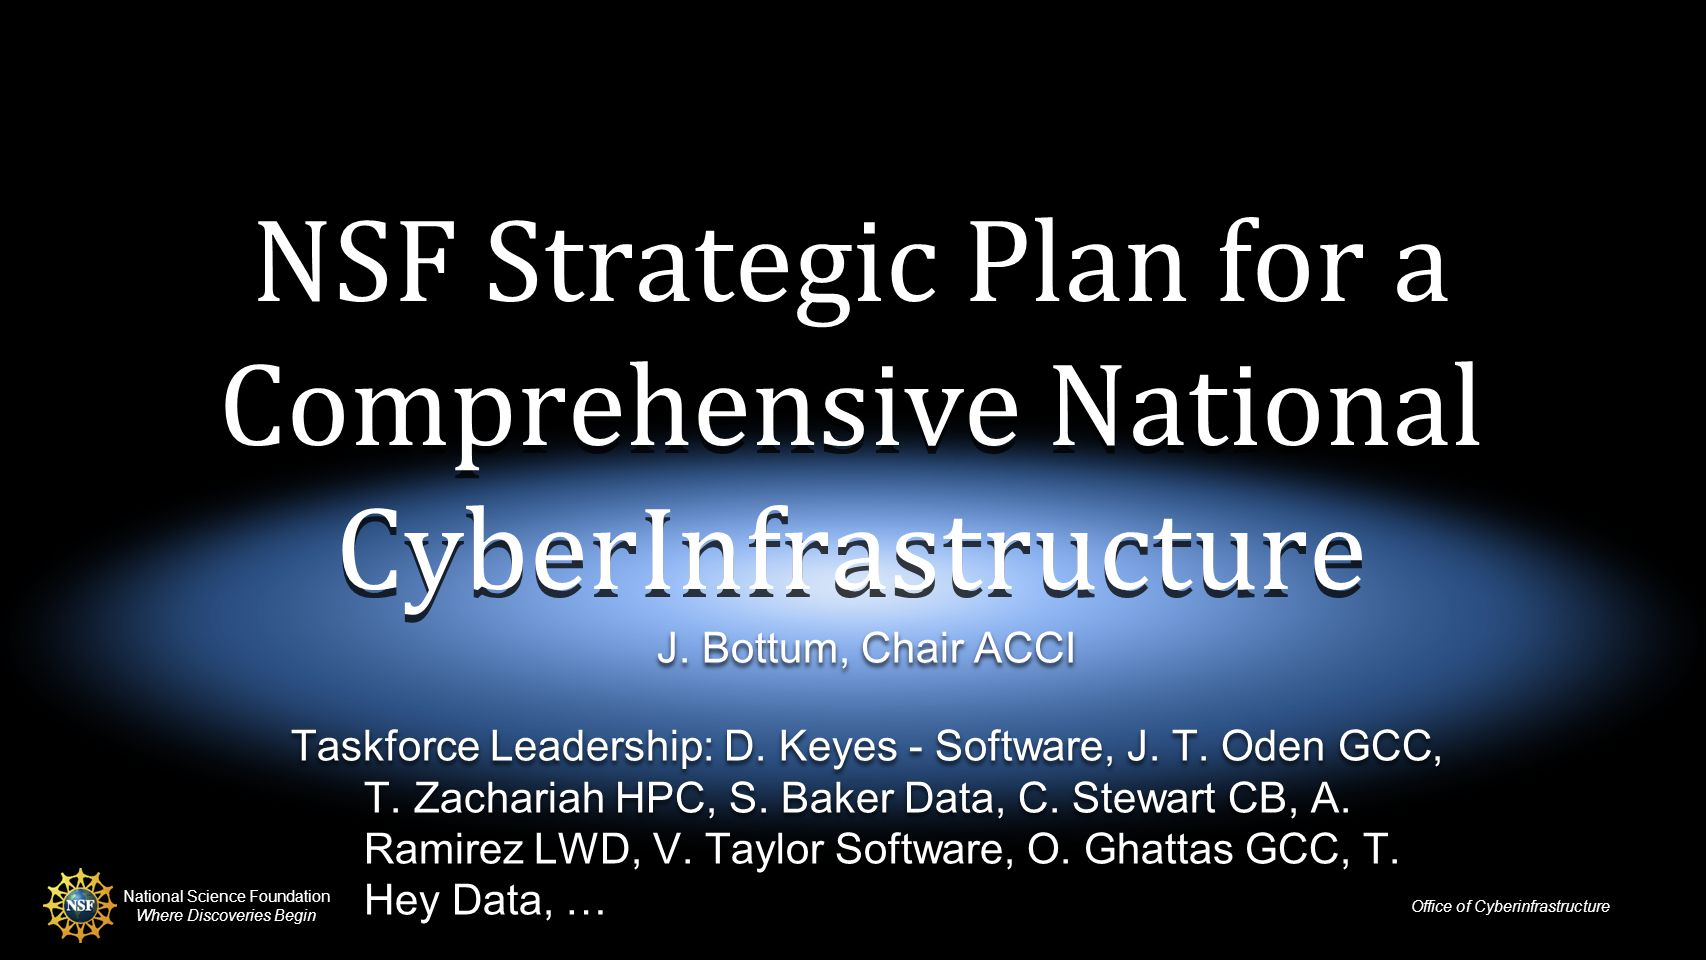 National Science Foundation Where Discoveries Begin Office of Cyberinfrastructure NSF Strategic Plan for a Comprehensive National CyberInfrastructure J.